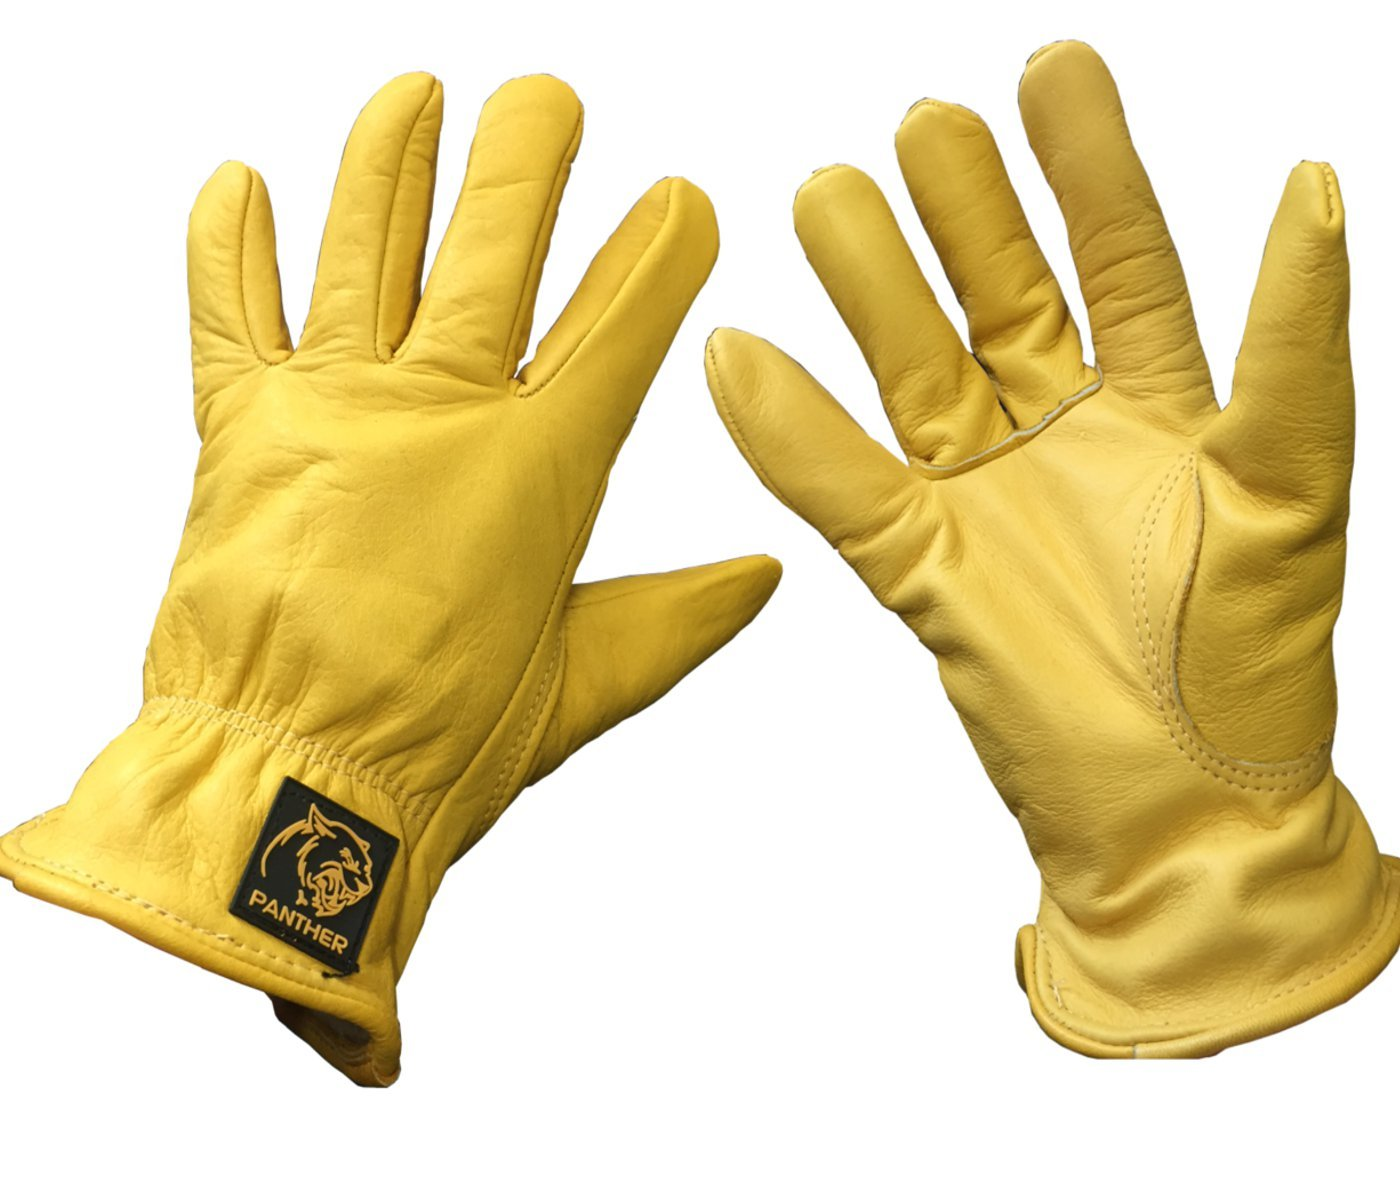 Dickies unlined leather work gloves gl0300 - Parweld Panther Premium Leather Drivers Glove Fully Lined Tough Work Gloves